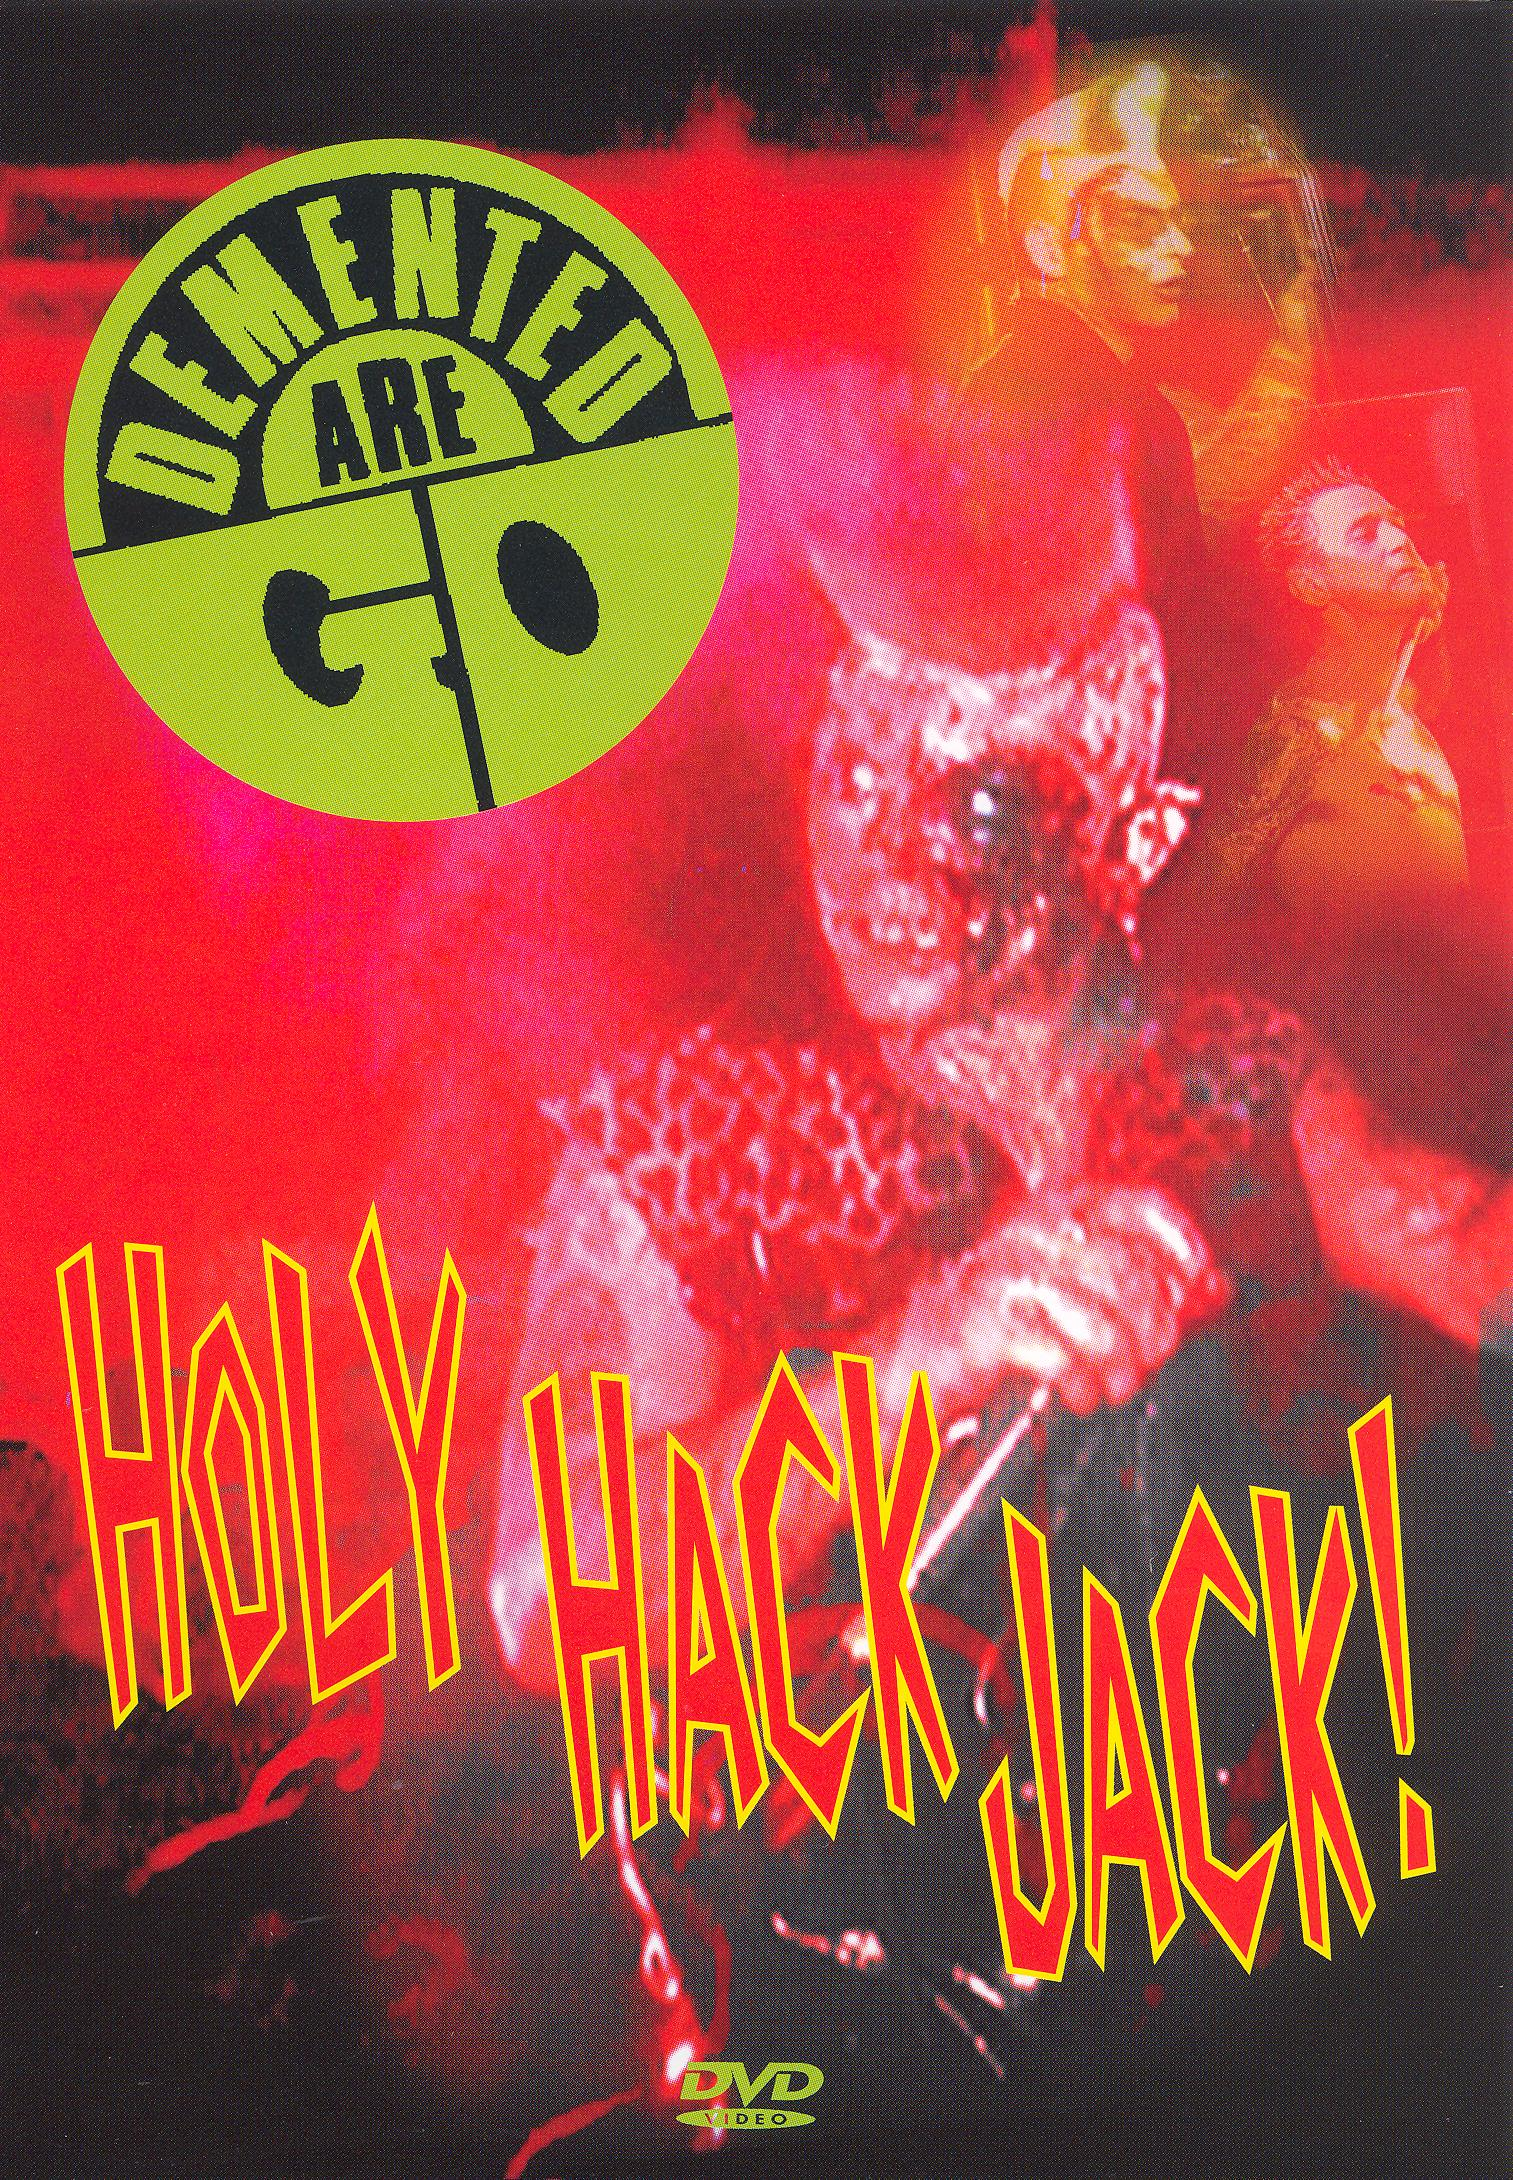 Demented Are Go: Holy Hack Jack